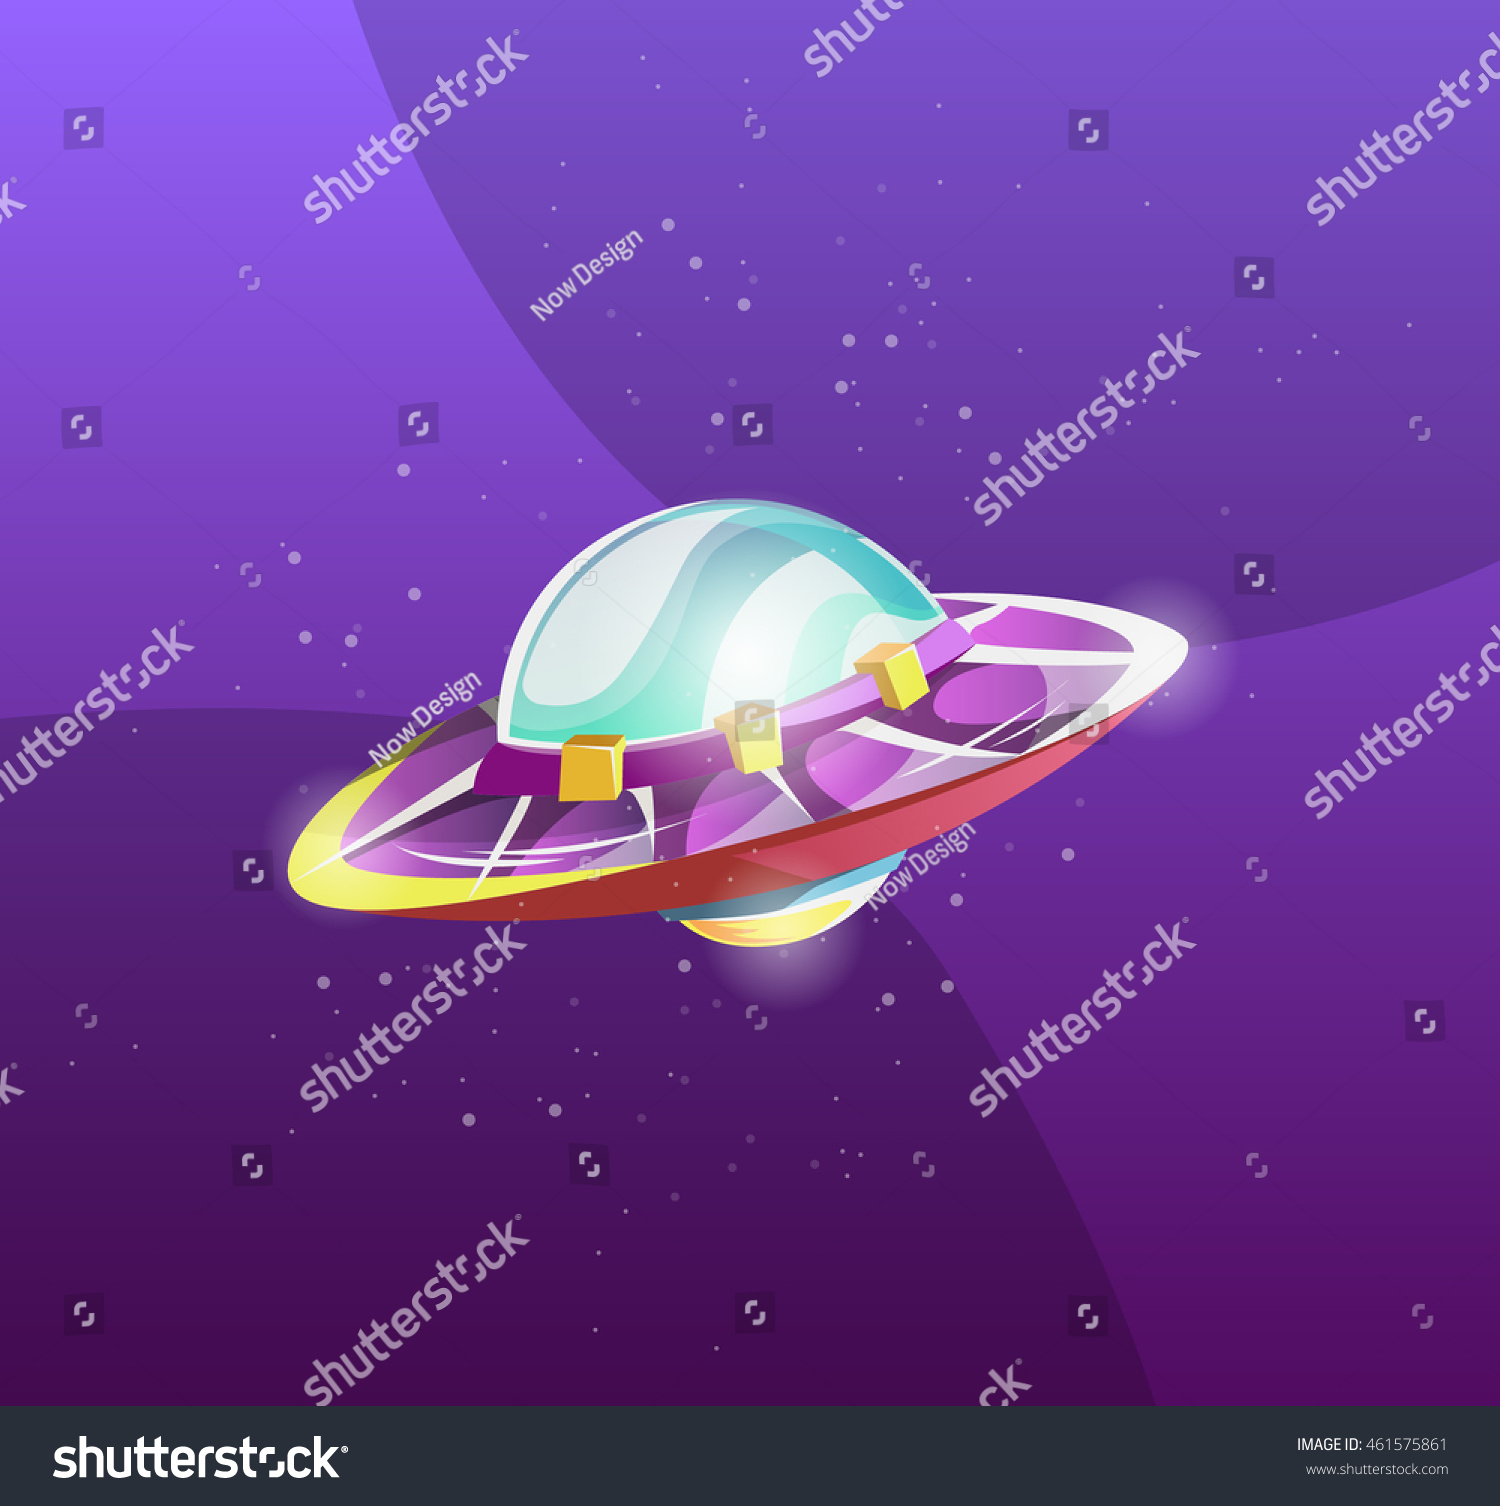 Ufo Alien Spaceship Element Design Games Stock Vector Royalty Free